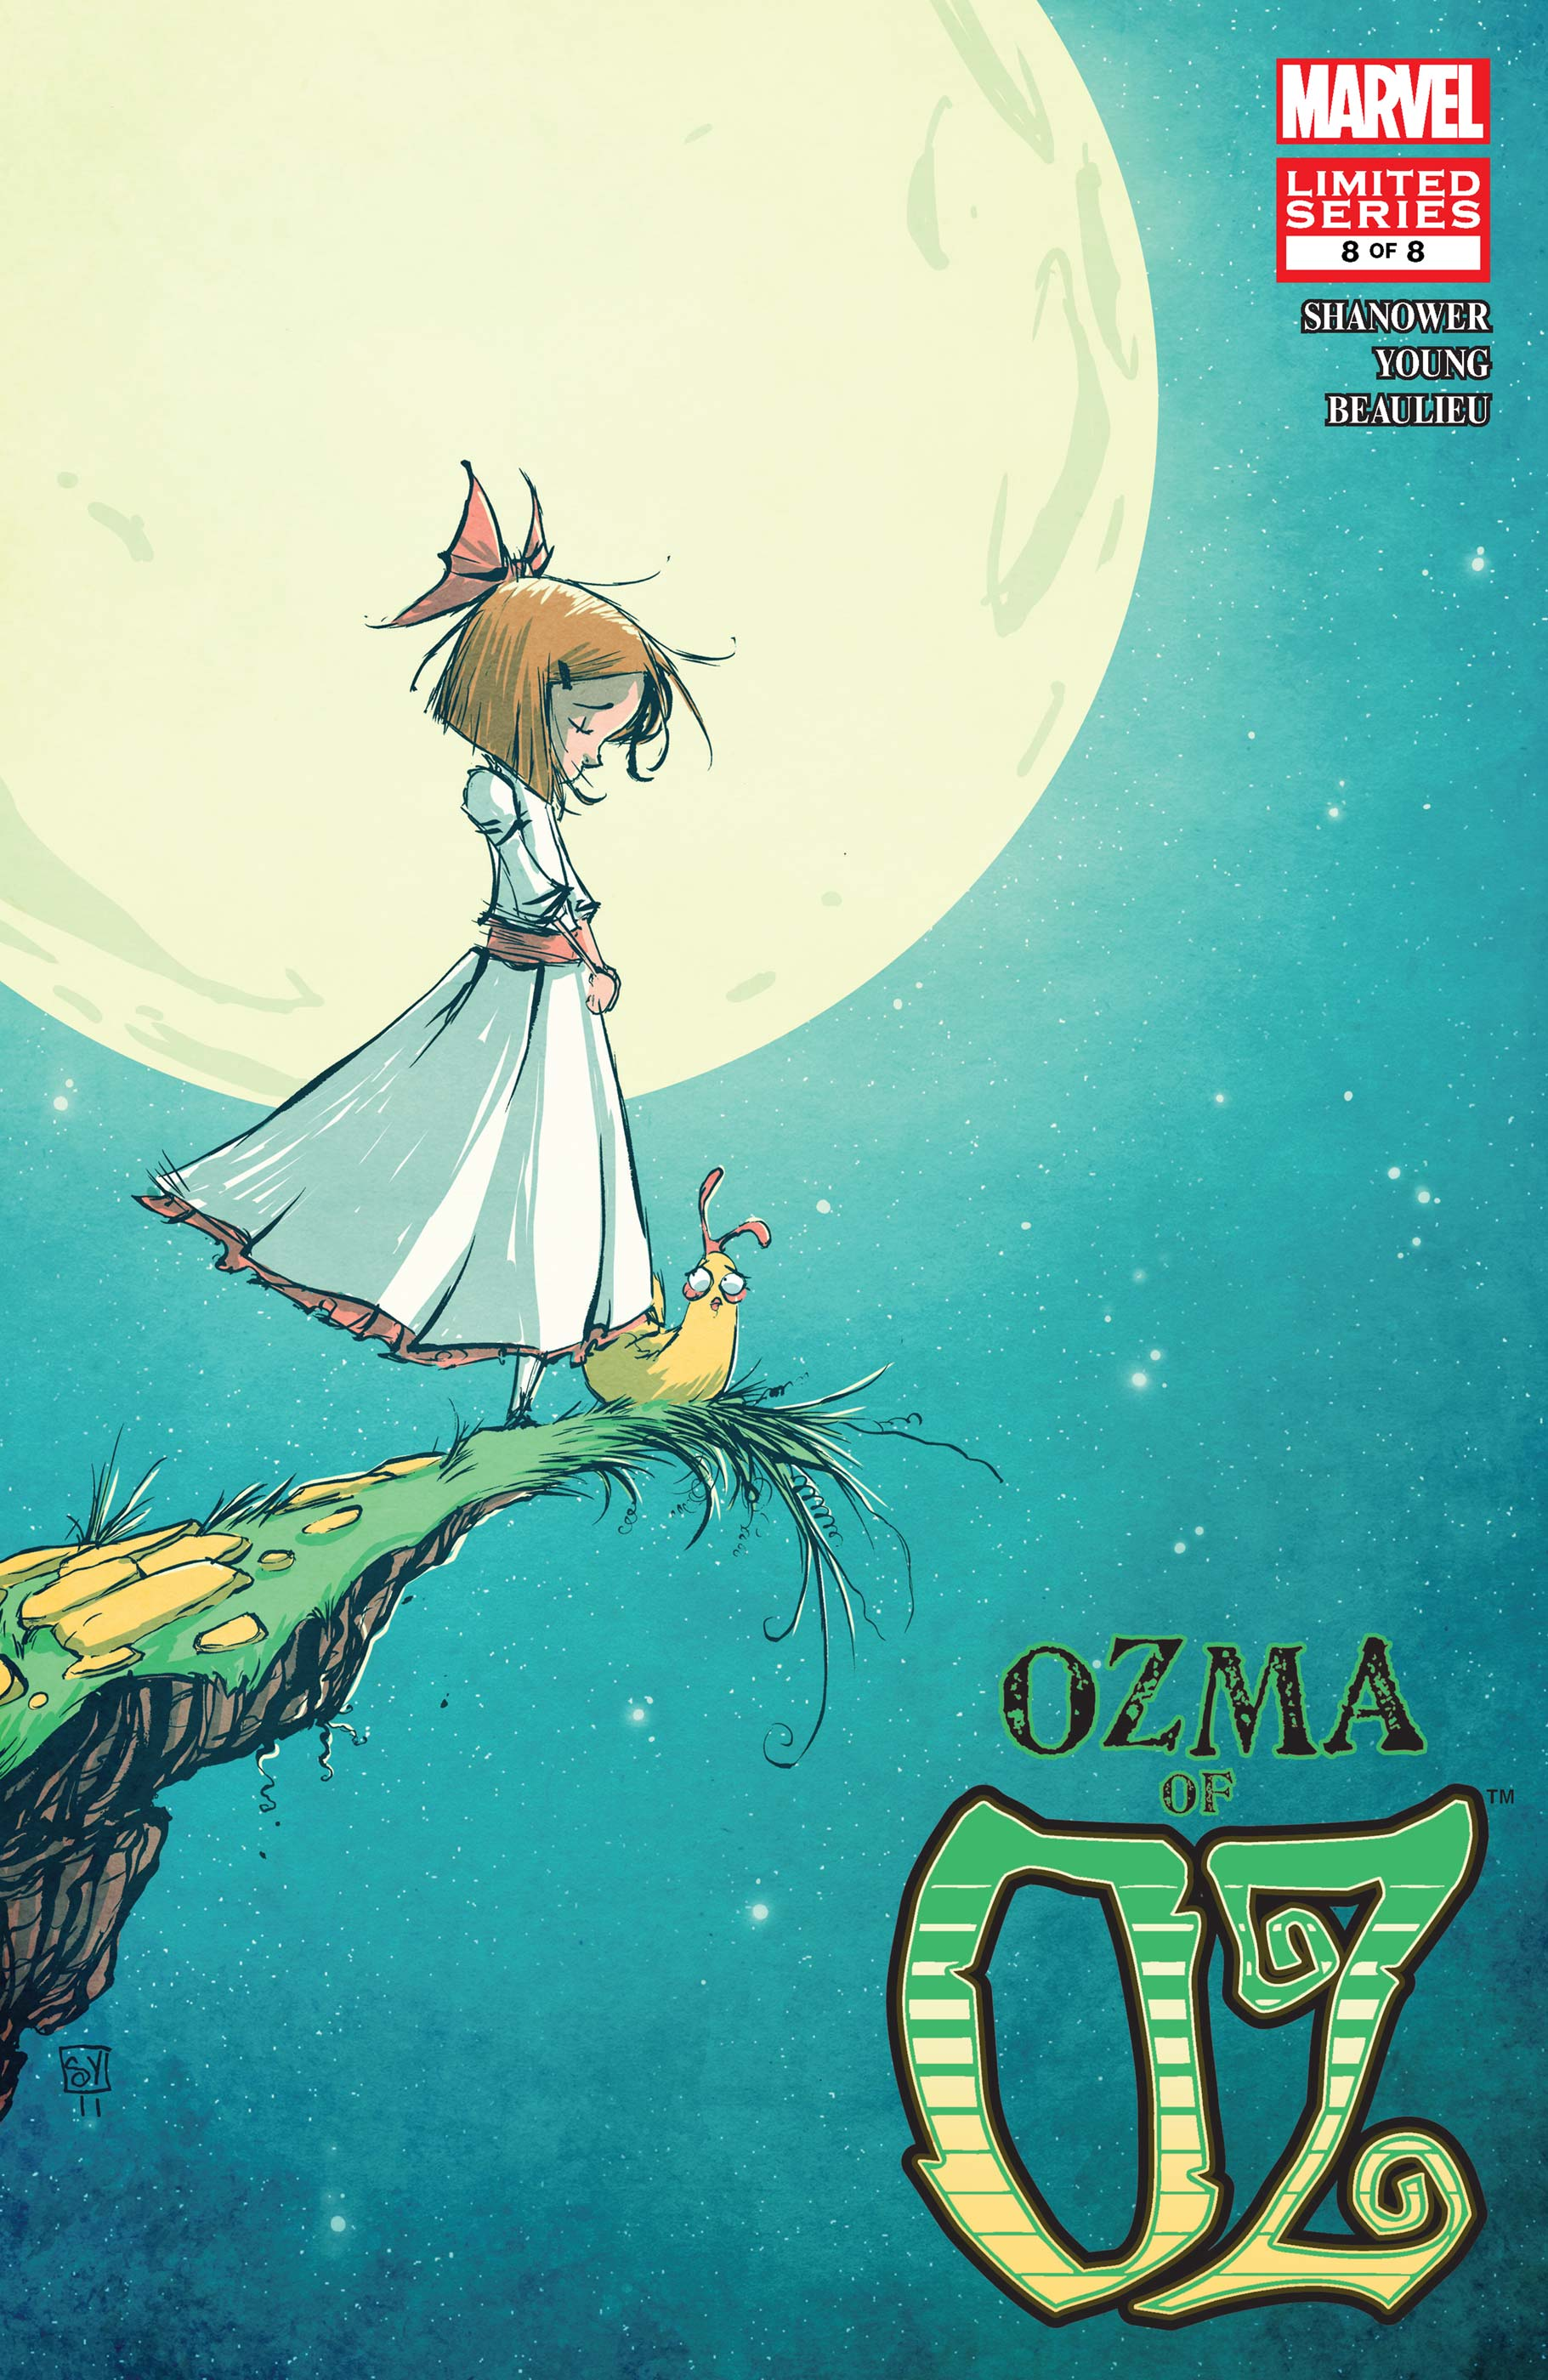 Ozma of Oz (2010) #8